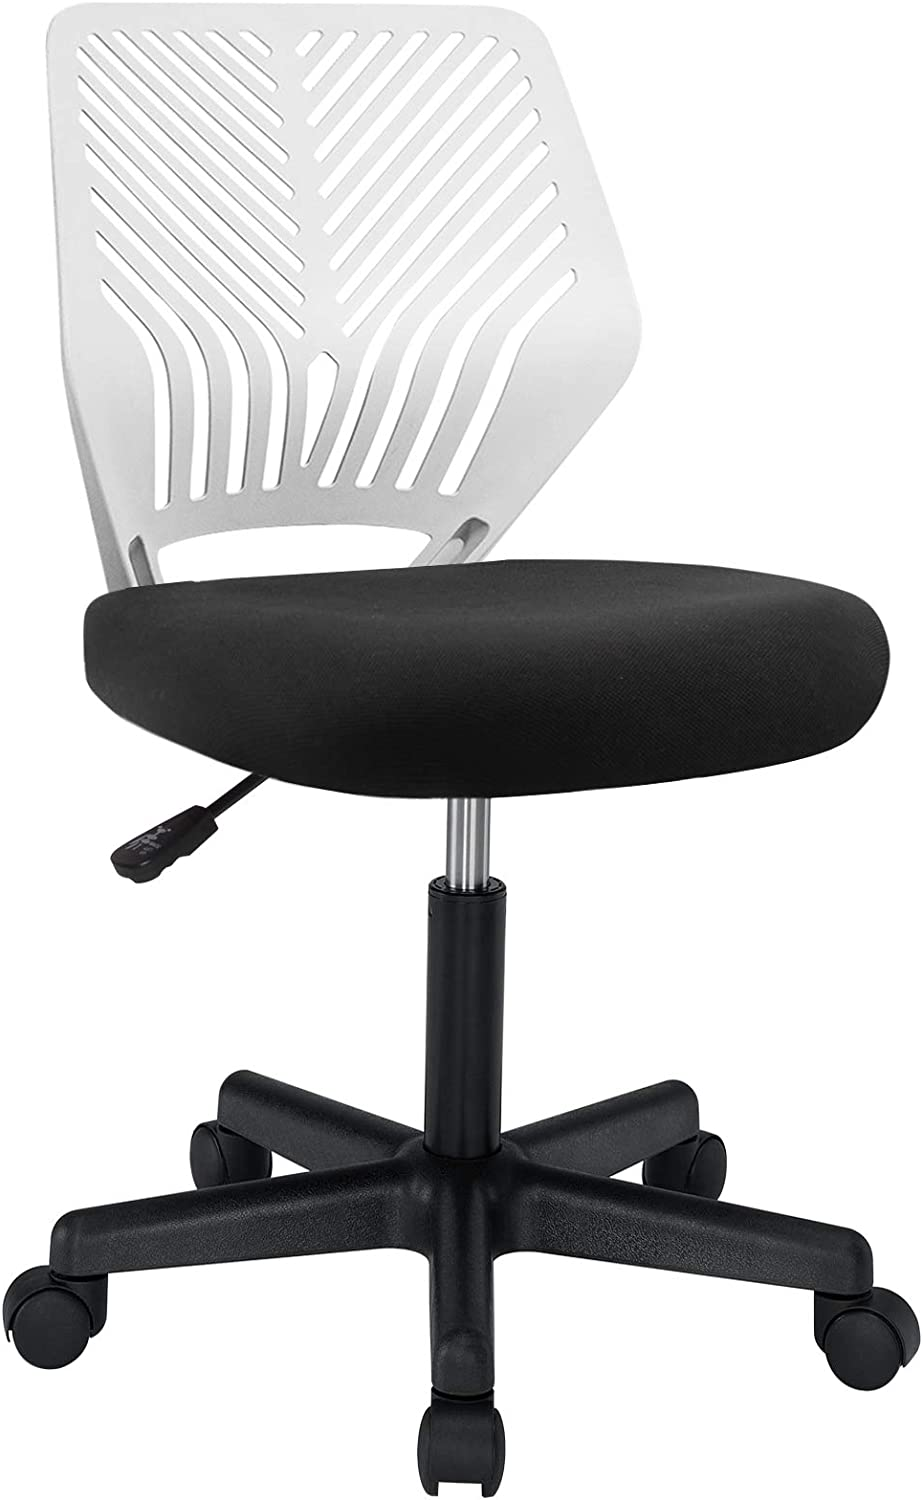 BOSSIN Kids Desk Office Chair for Teens Computer Mesh Chair with Low-Back Armless Adjustable Swivel Ergonomic Home Office Student Chair Black White(White)